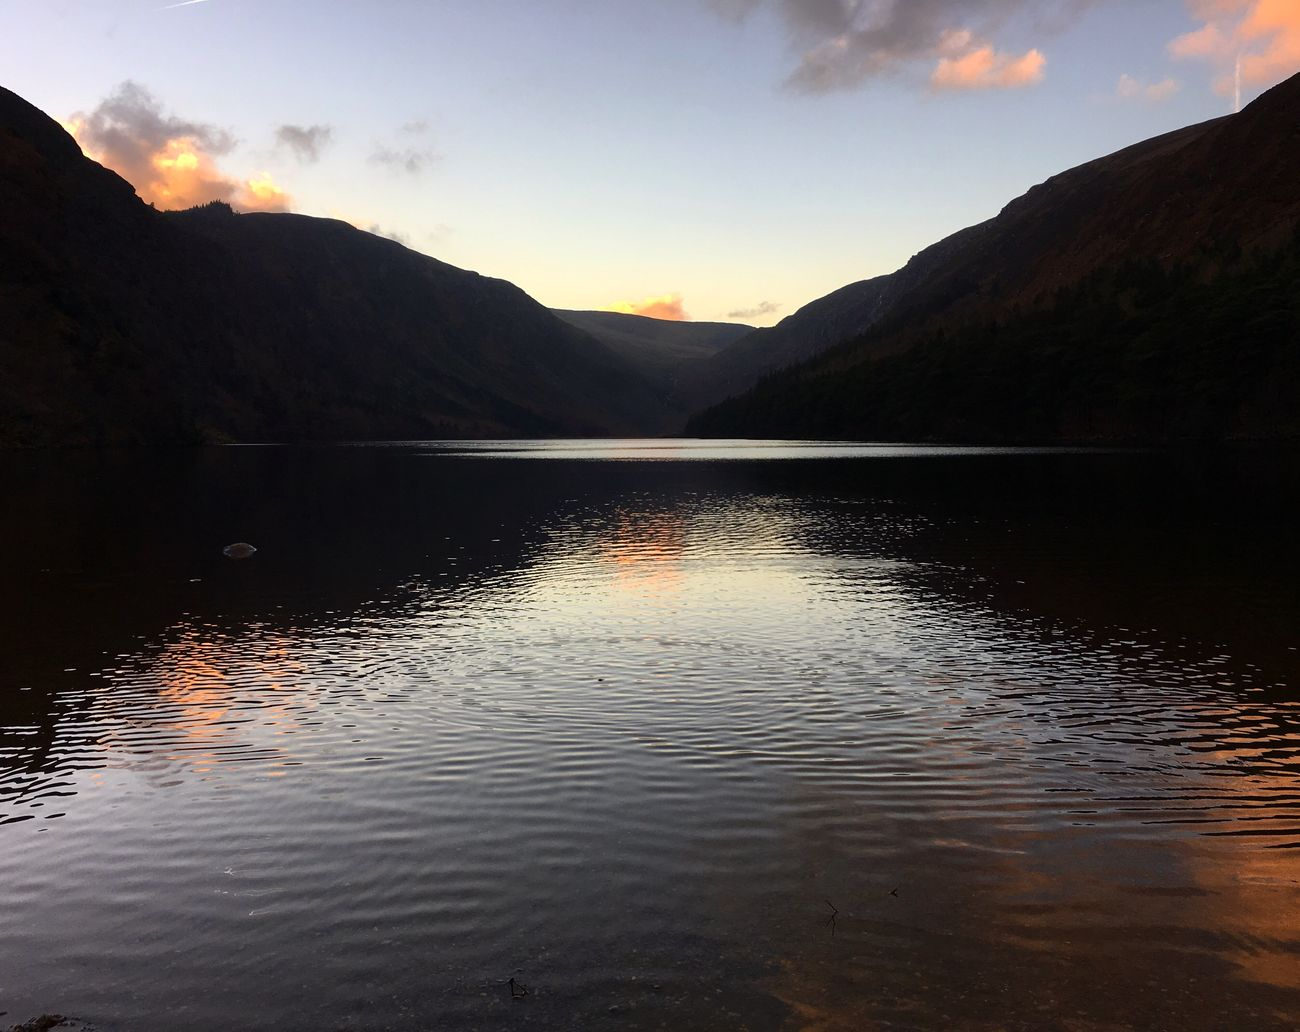 Travel Destinations Ireland Reflection Sunset Mountain Water Lake Traveling Travel Photography Glendalough Wicklow Wicklow Mountains